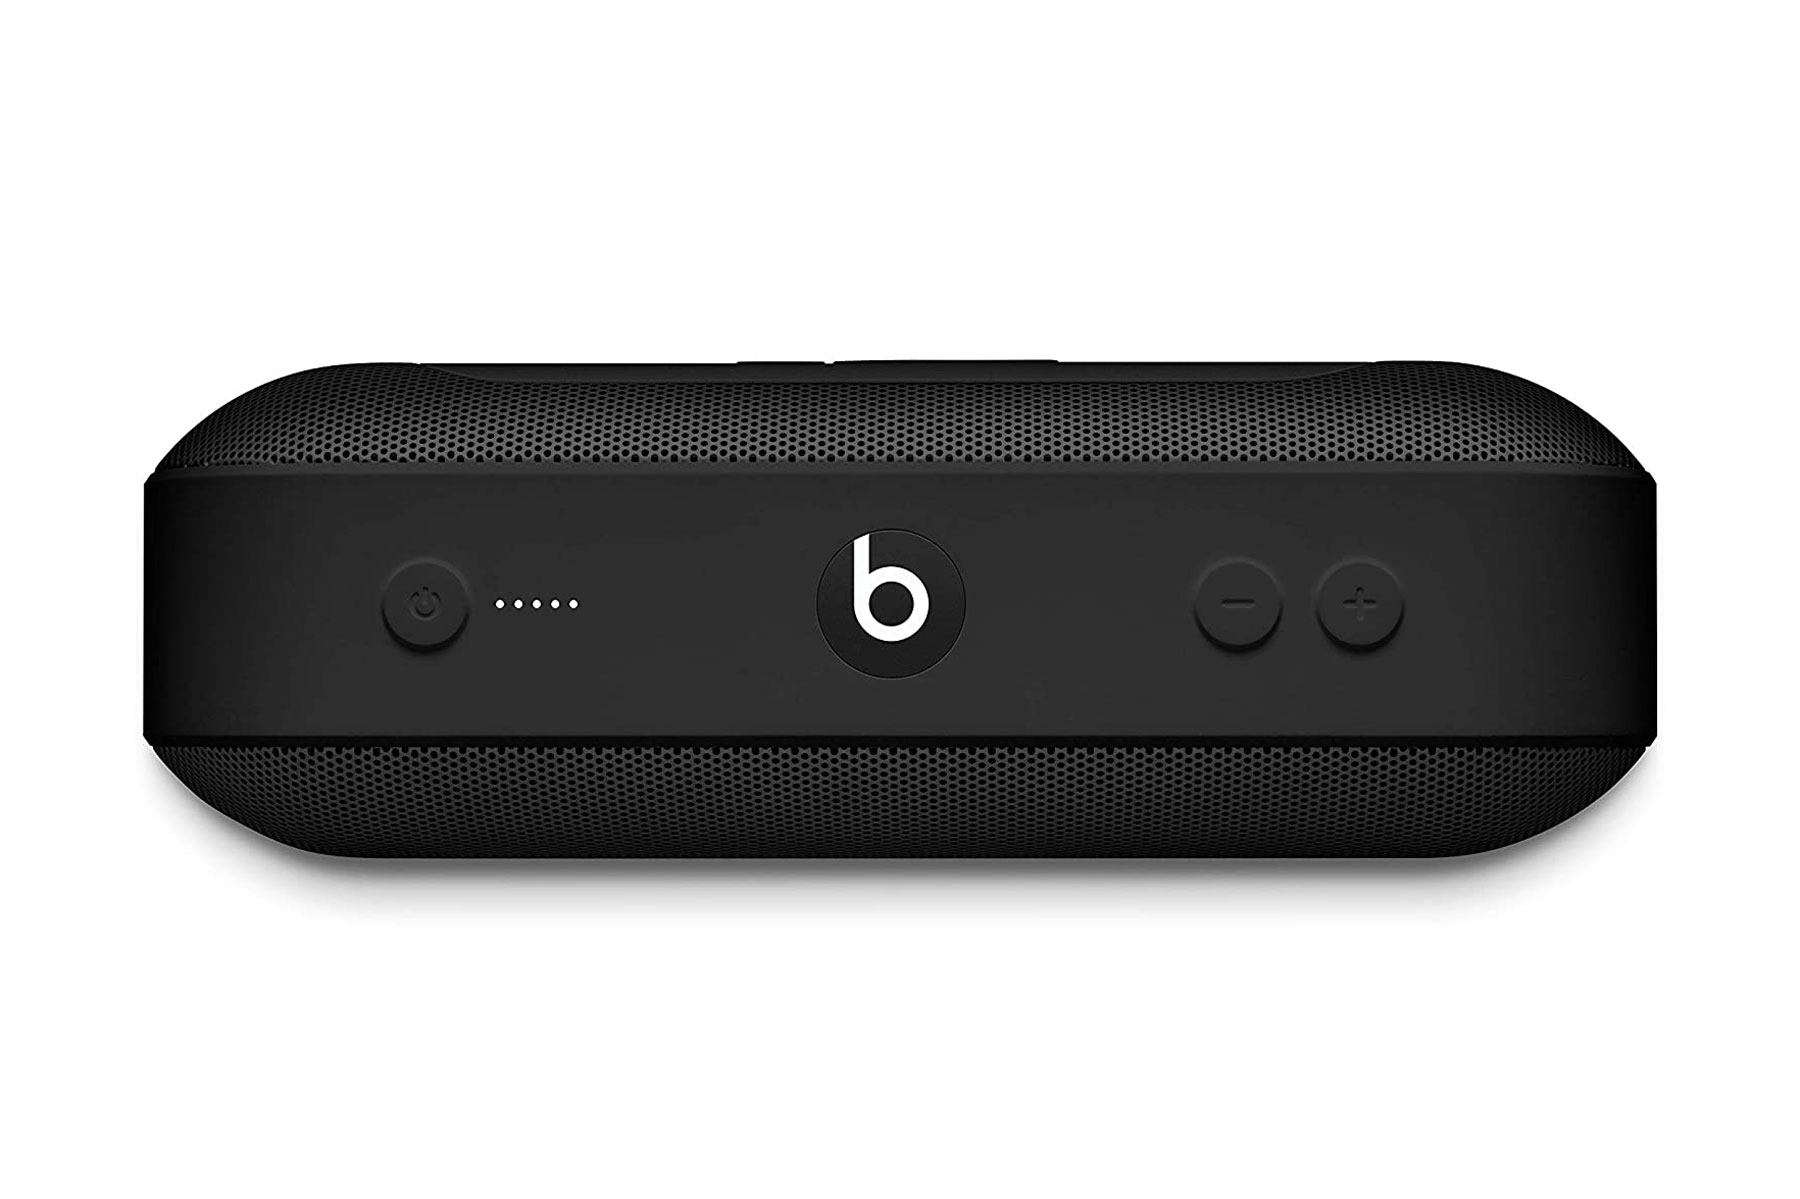 Black portable speaker